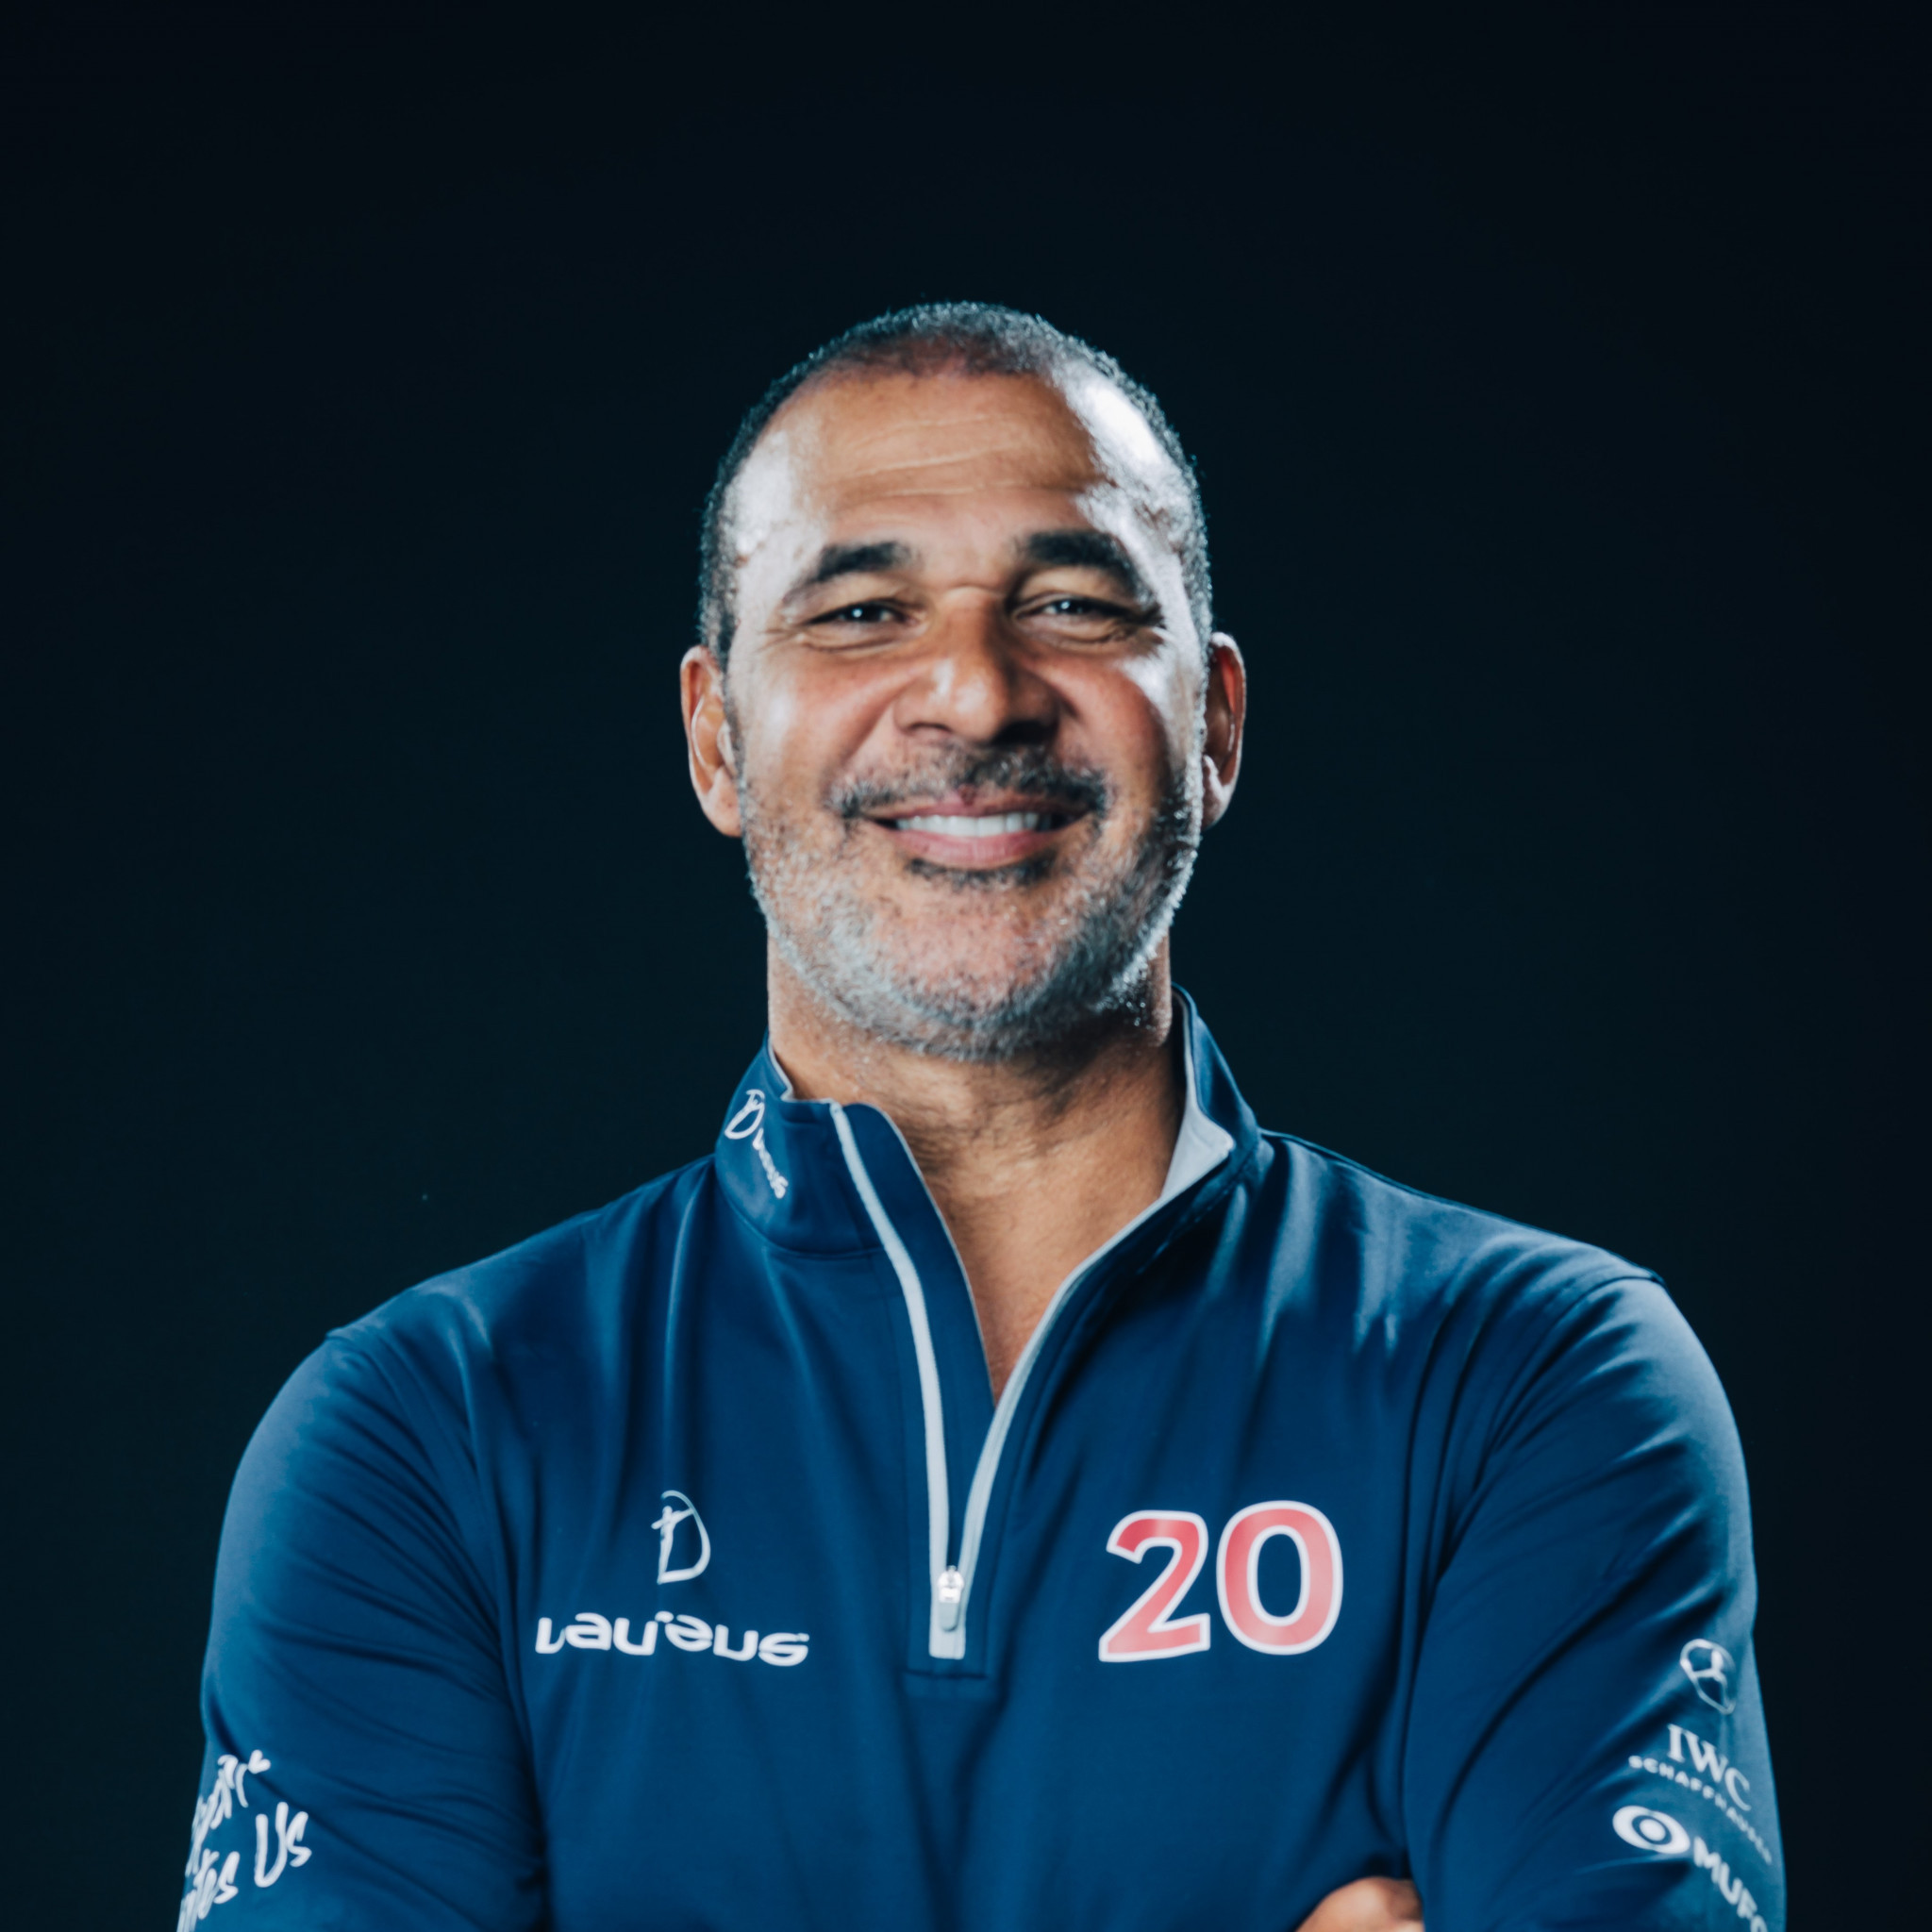 Team Gullit, Zeta Gaming and Genoa Esports early stars of 2021 FIFAe Club World Cup